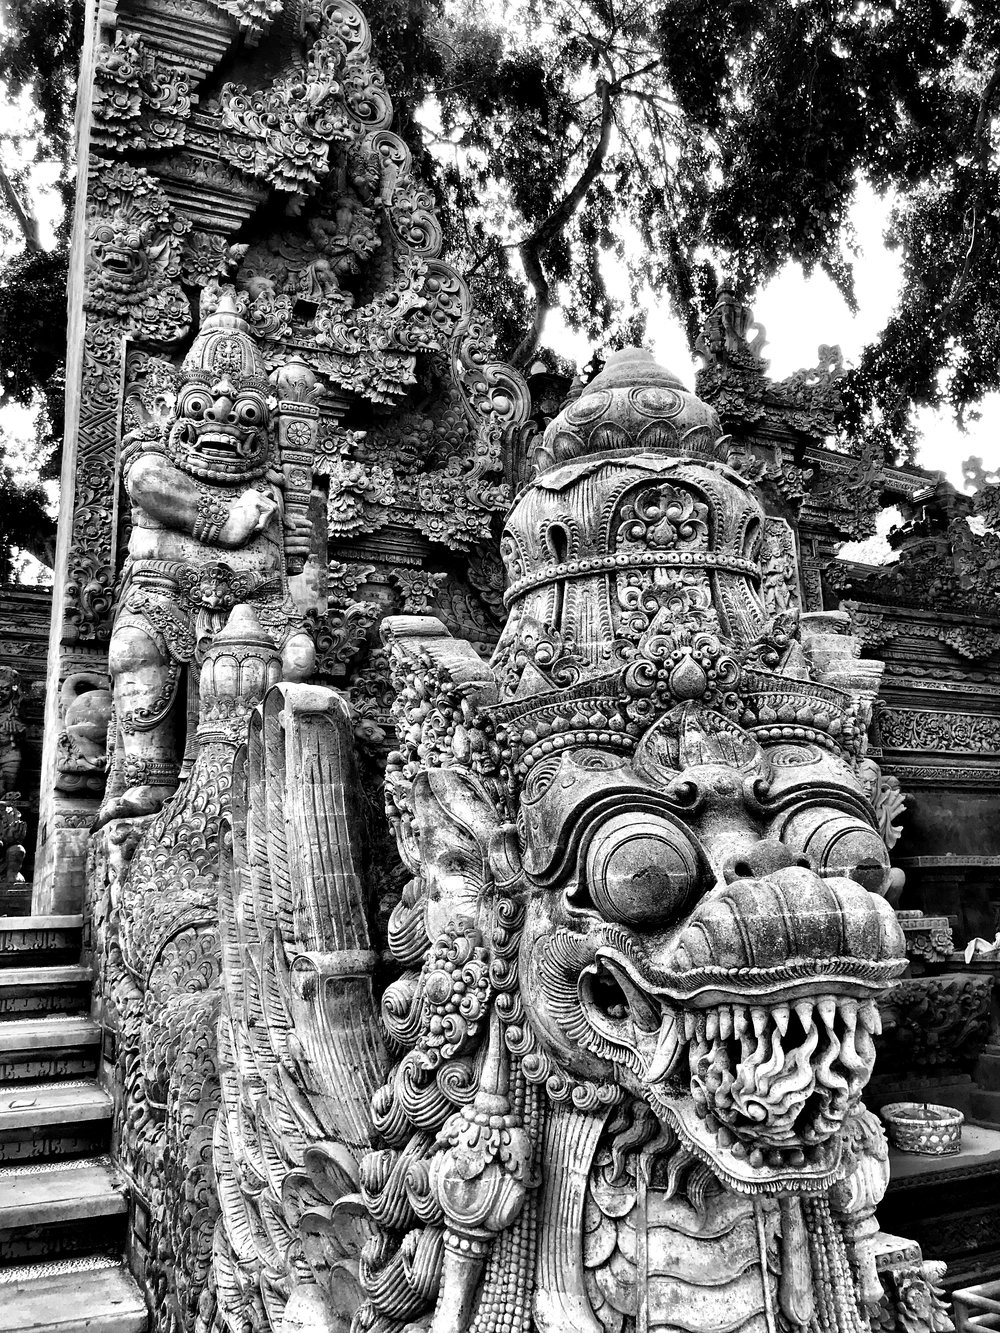 Many Hindu temples have balustrades that run the length of staircases in the shape of snakelike naga